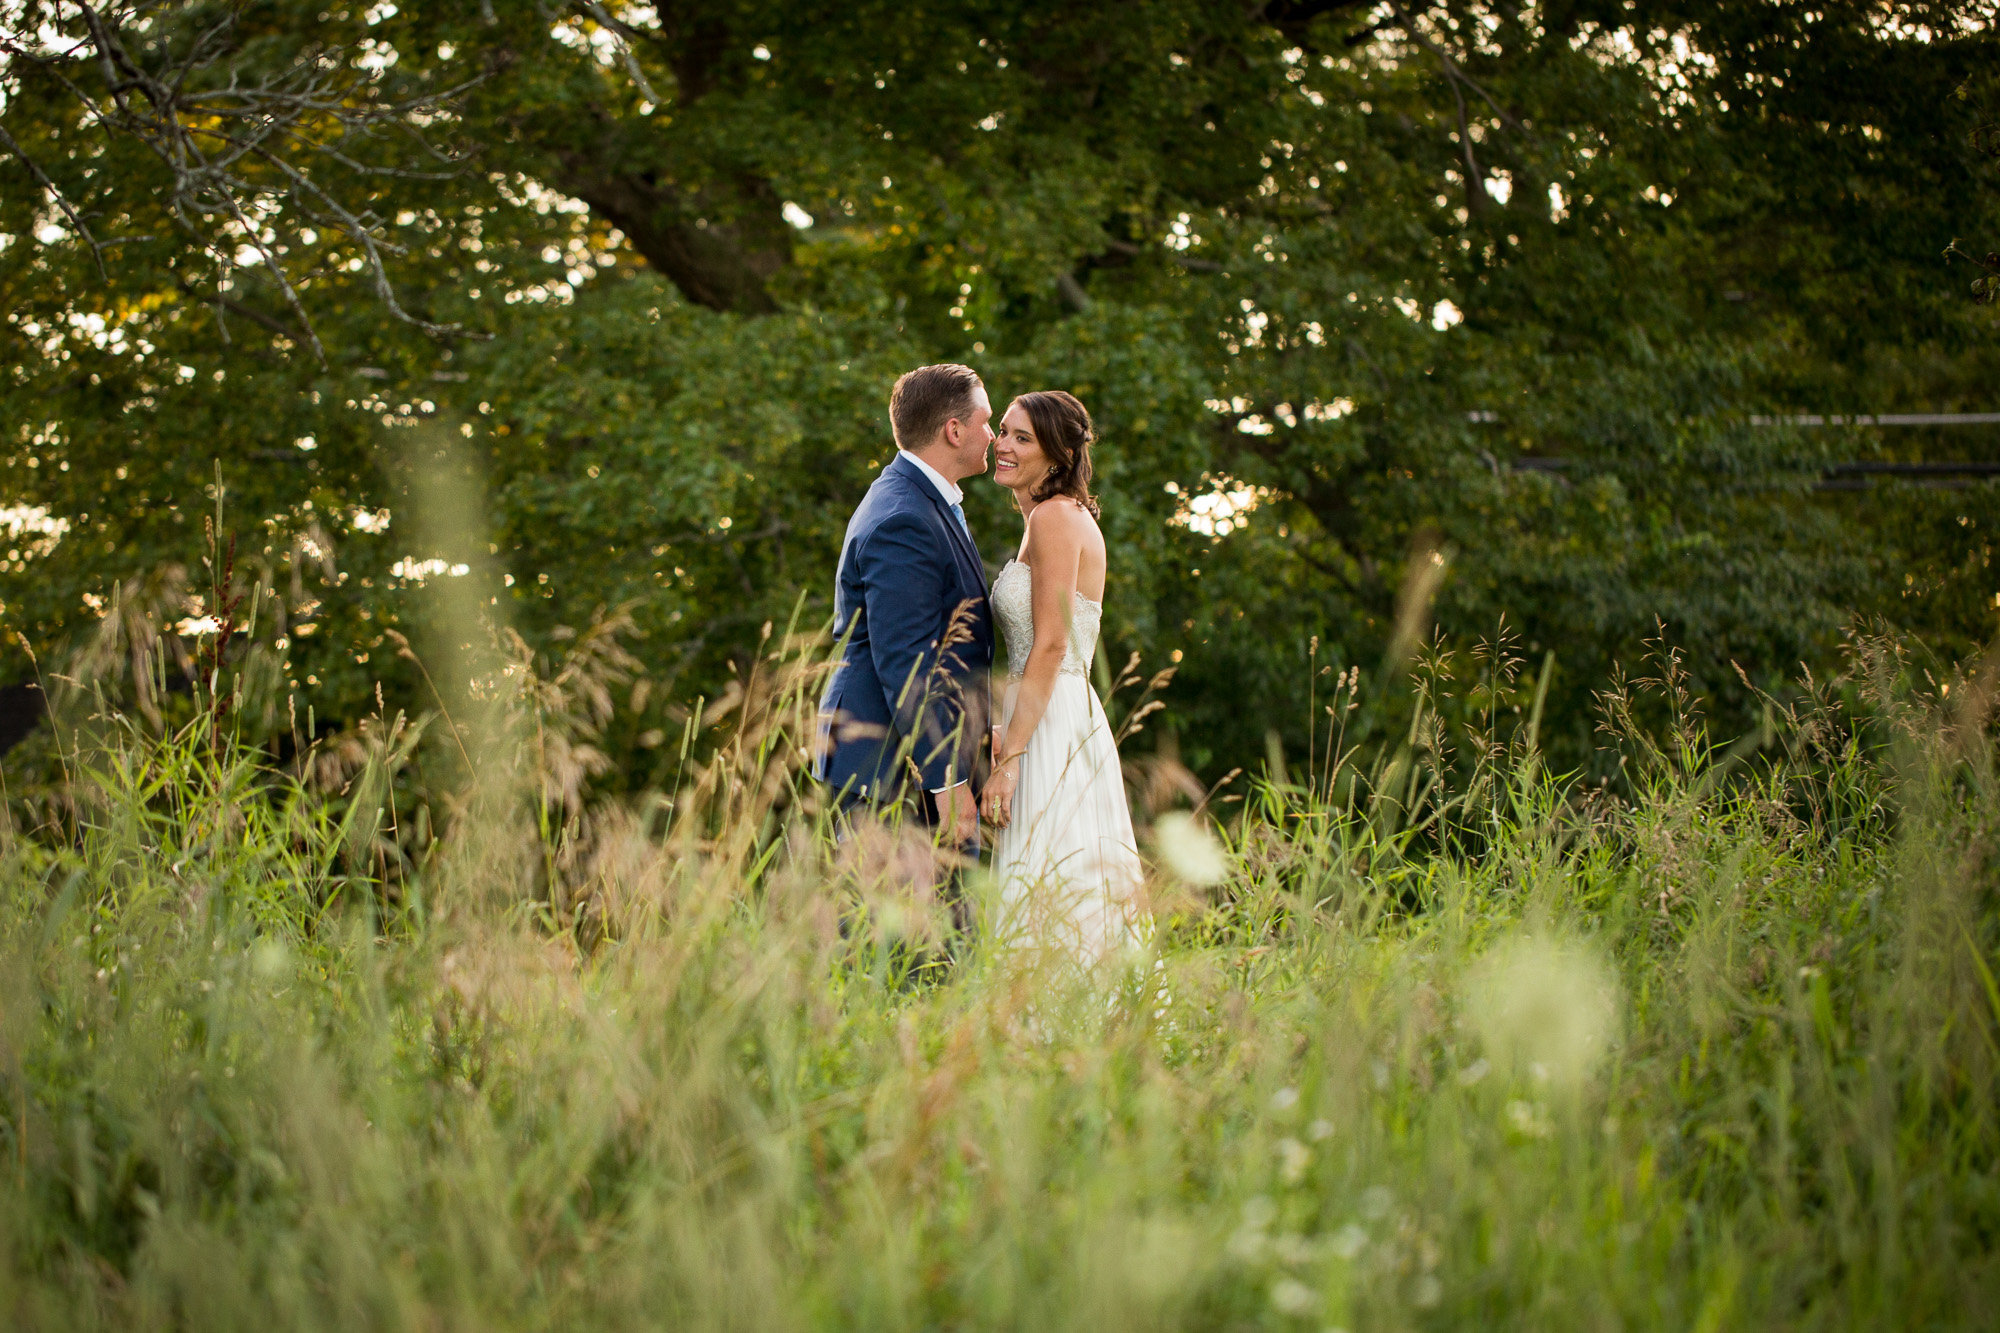 0802-laurentom-lowres-Bunnell-Farm-CT-Wedding-Photographer